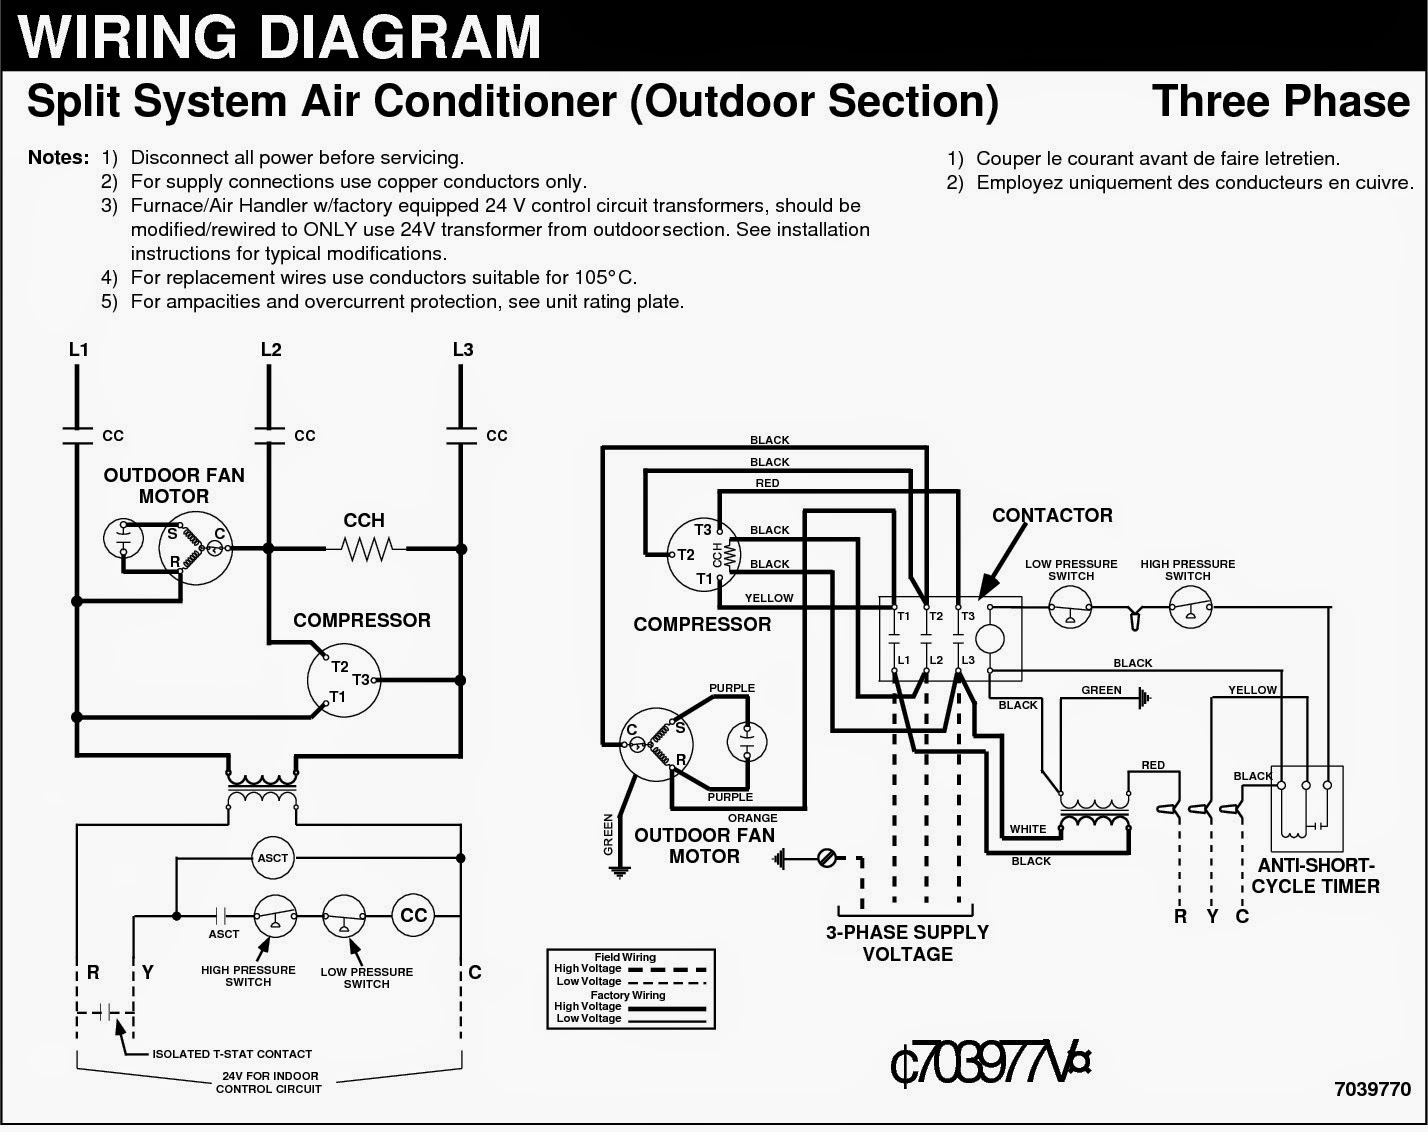 3+phase electrical wiring diagrams for air conditioning systems part two  at honlapkeszites.co